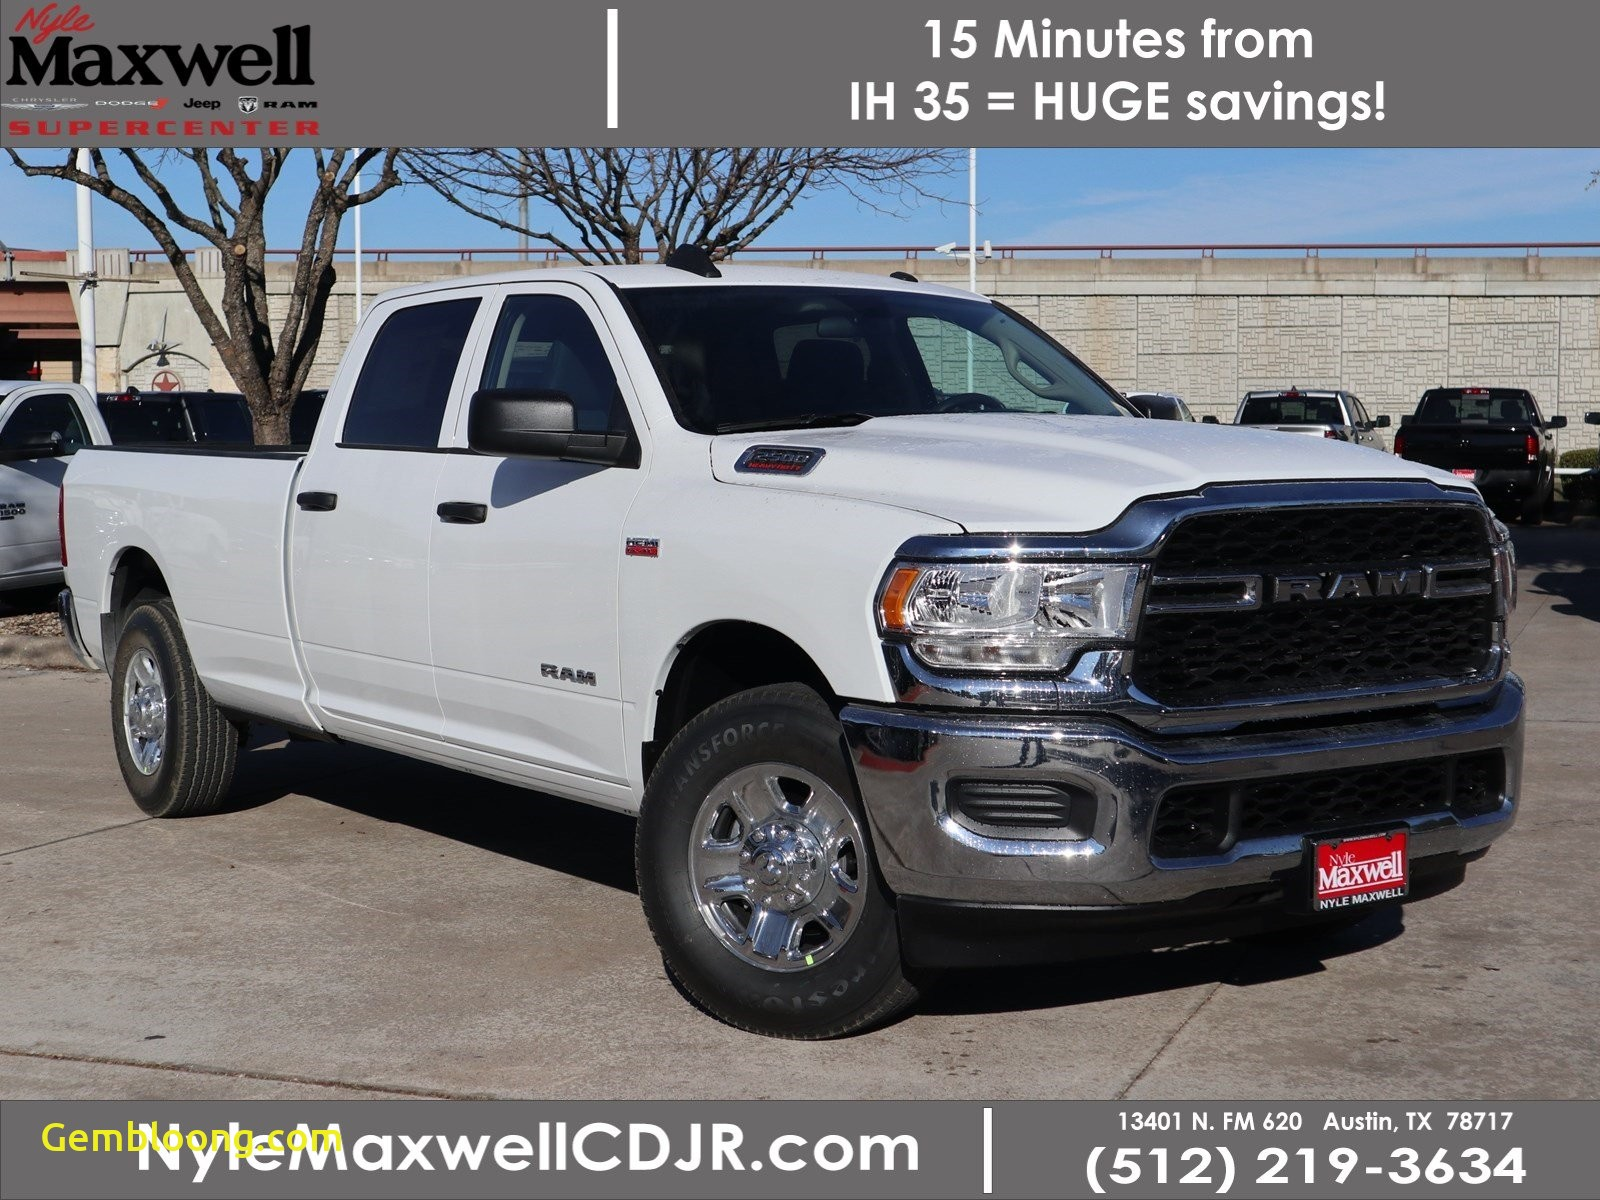 Cars for Sale Under 10000 Austin Tx Awesome New 2020 Ram 2500 Tradesman Crew Cab 4×2 8 Box